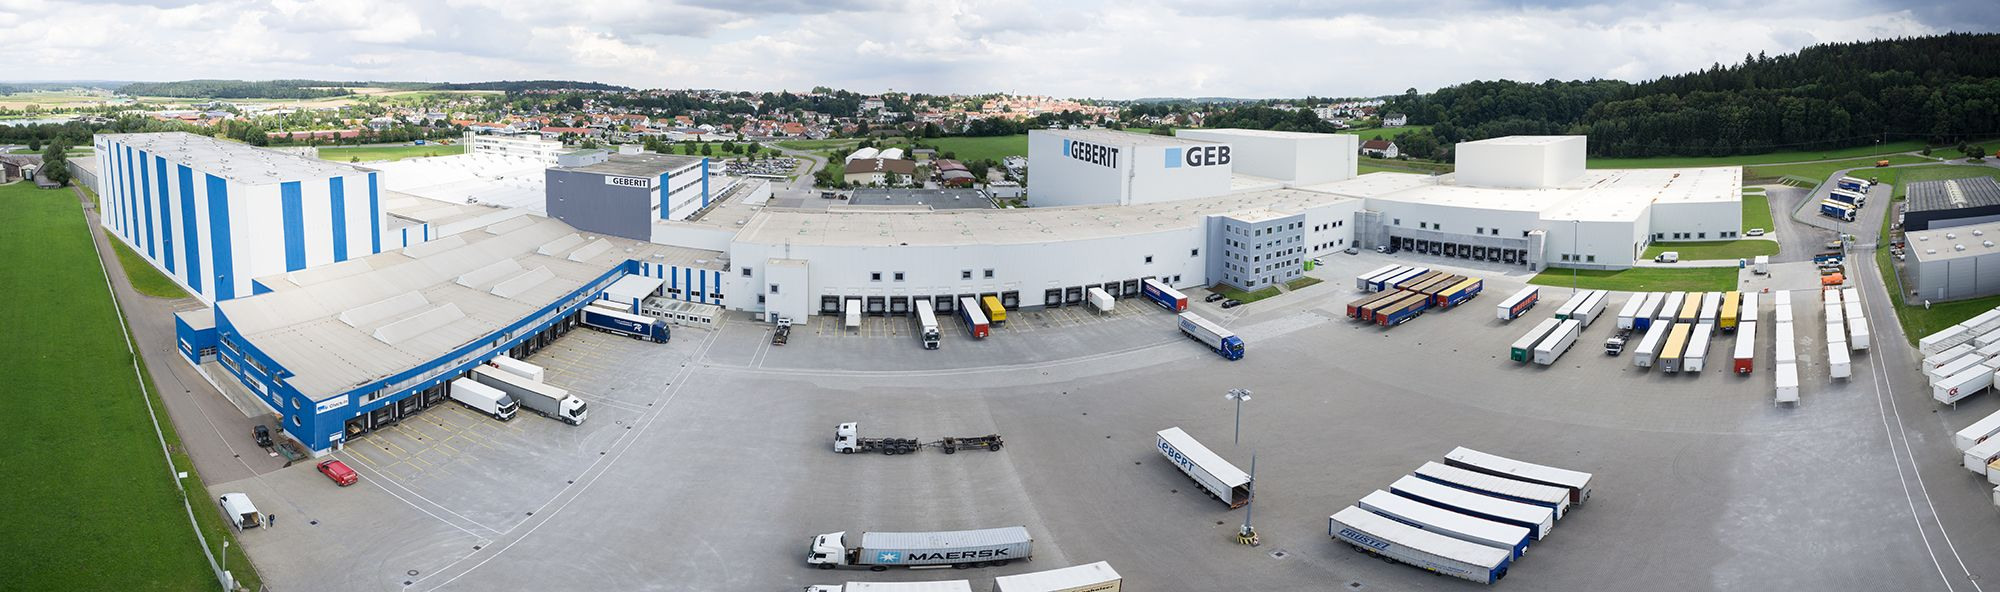 The logistics centre in Pfullendorf is being significantly expanded. Because the roof surfaces are still bright, the new buildings can easily be made out in aerial photographs.